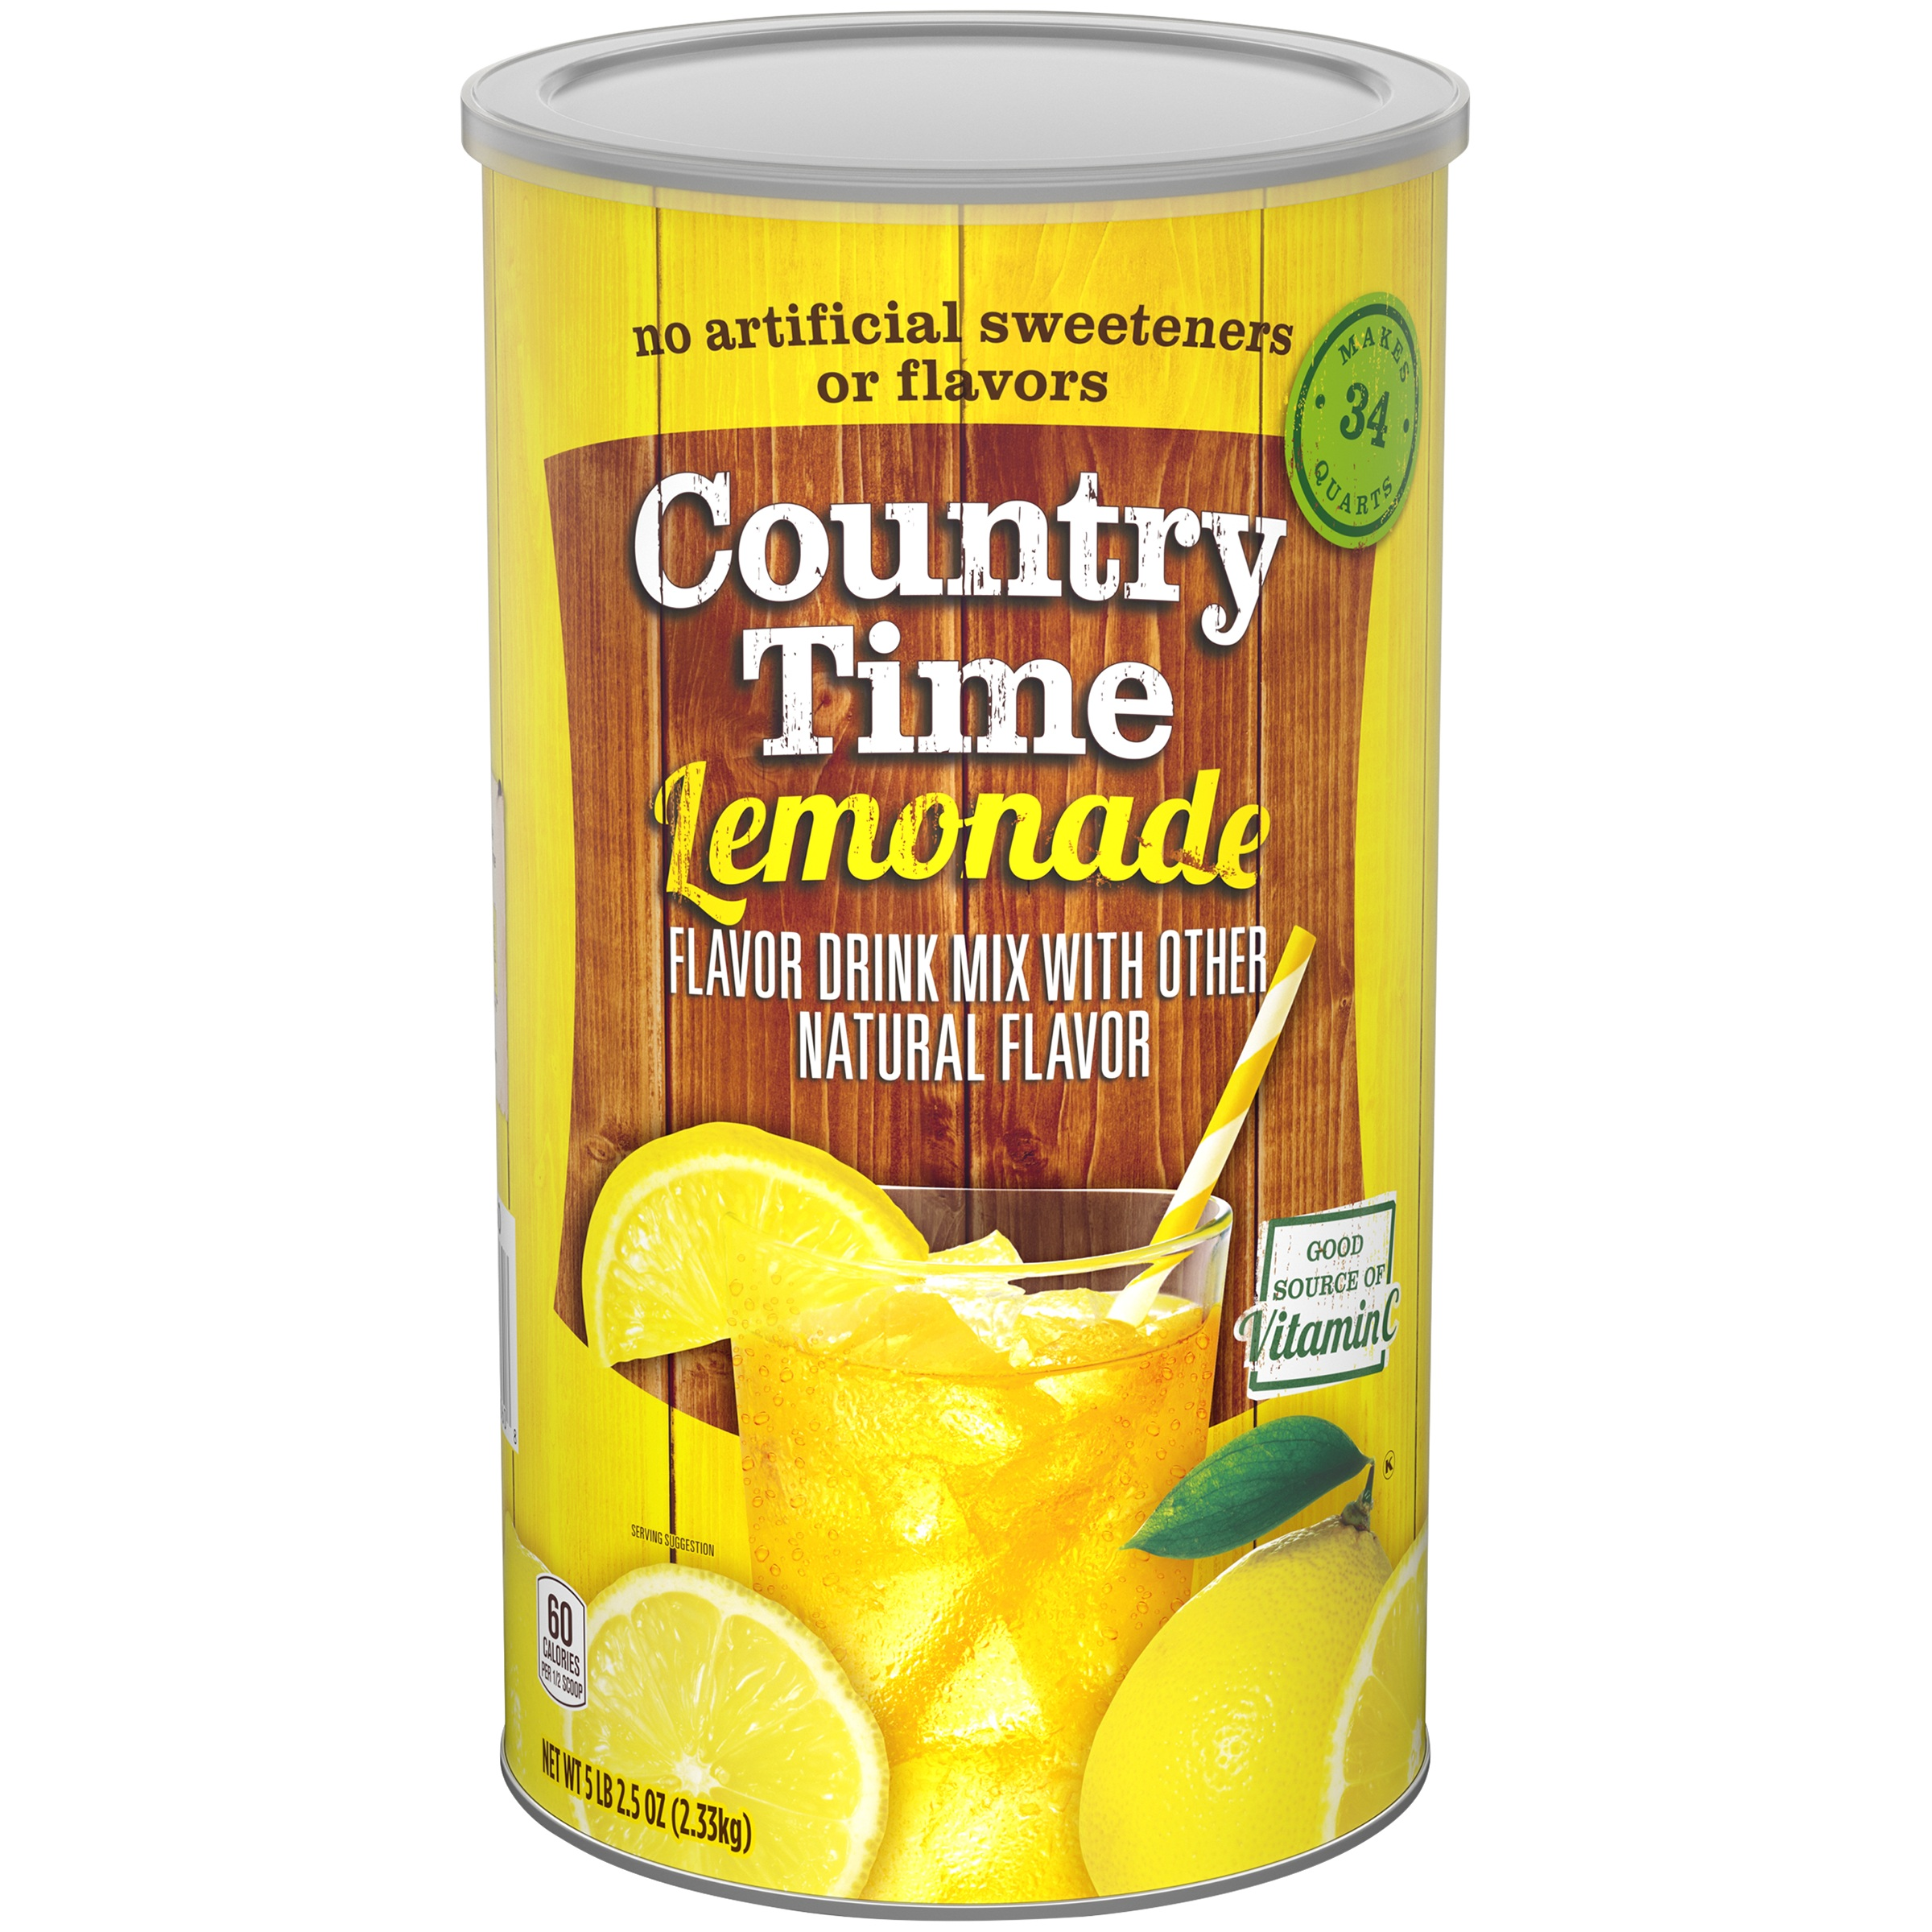 Country Time Lemonade Drink Mix 5.15 lb. Canister